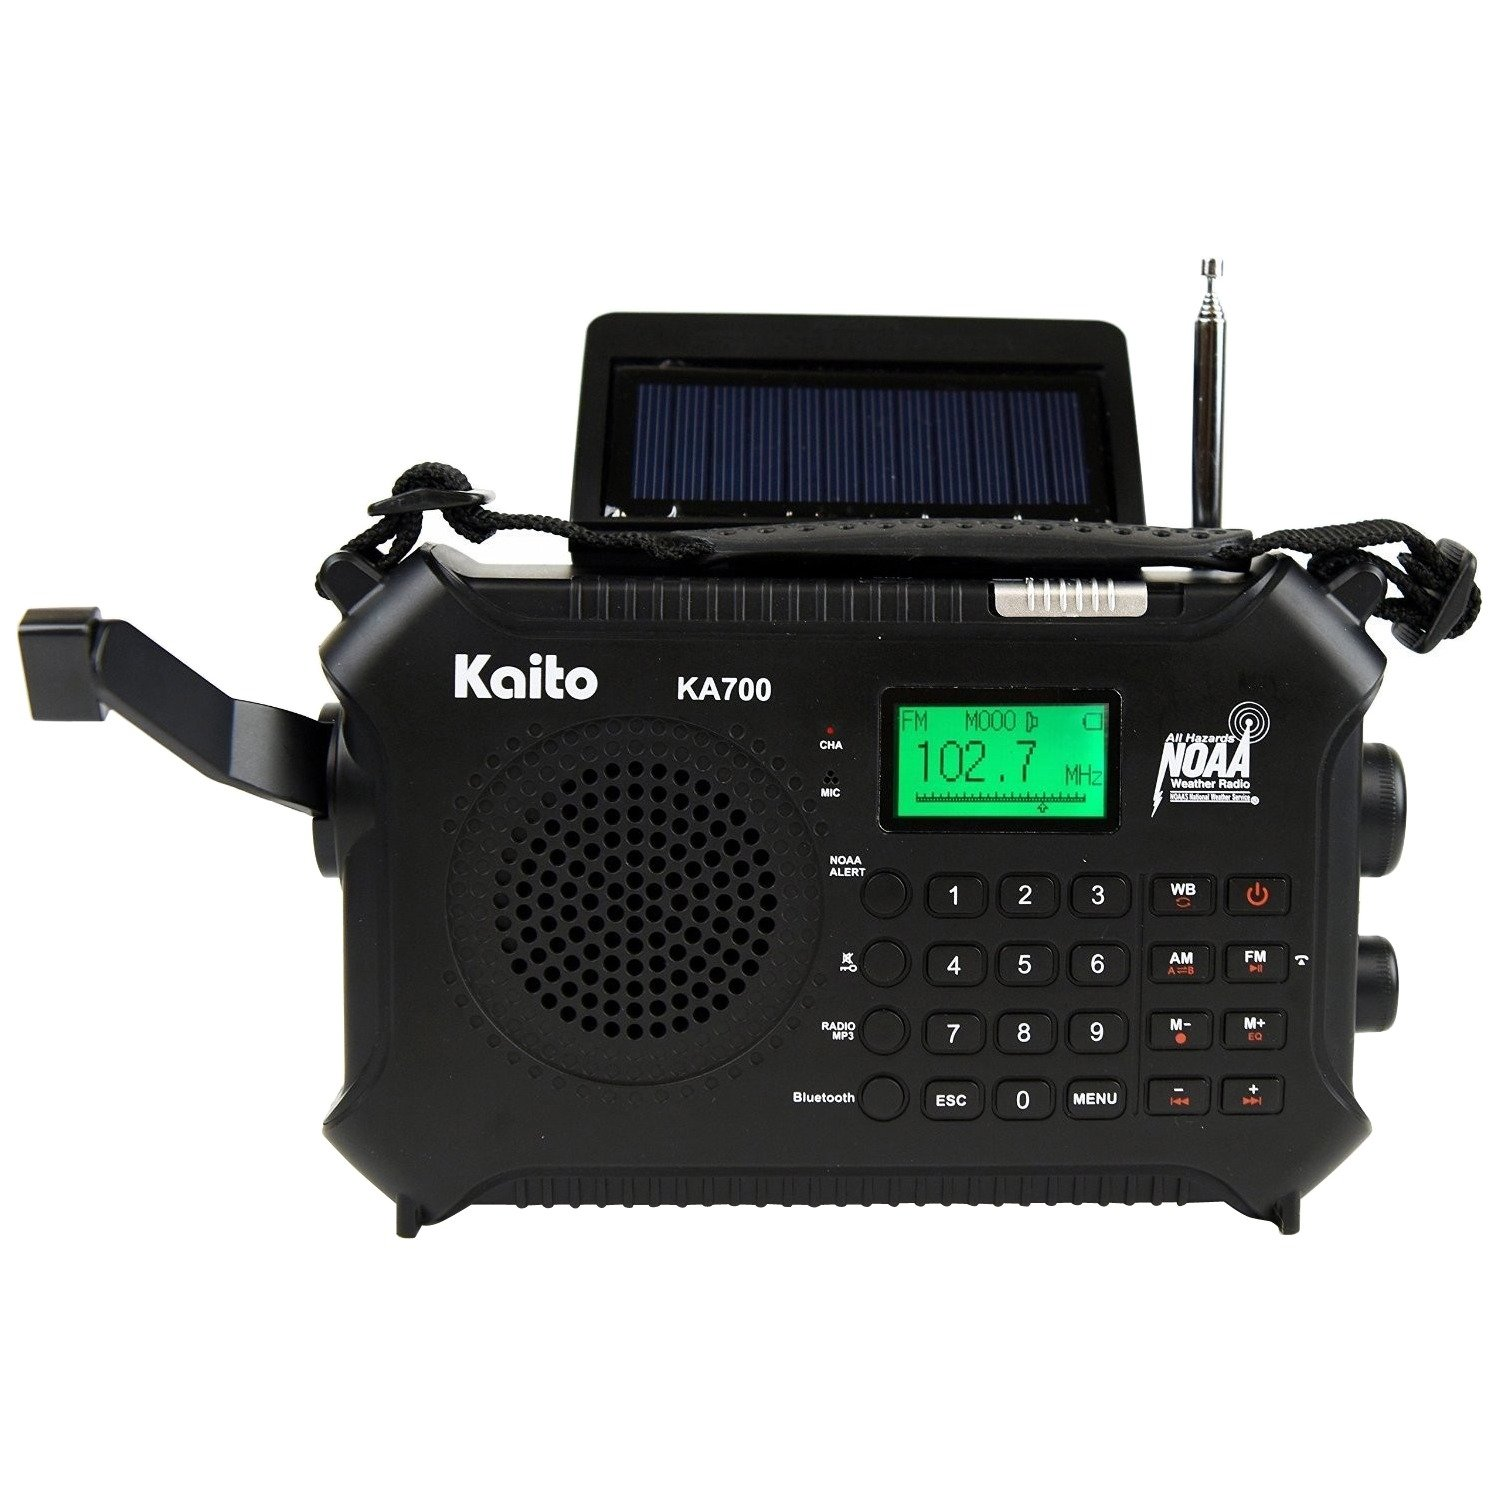 Kaito Solar Crnk BT AM FM WB SW NOAA